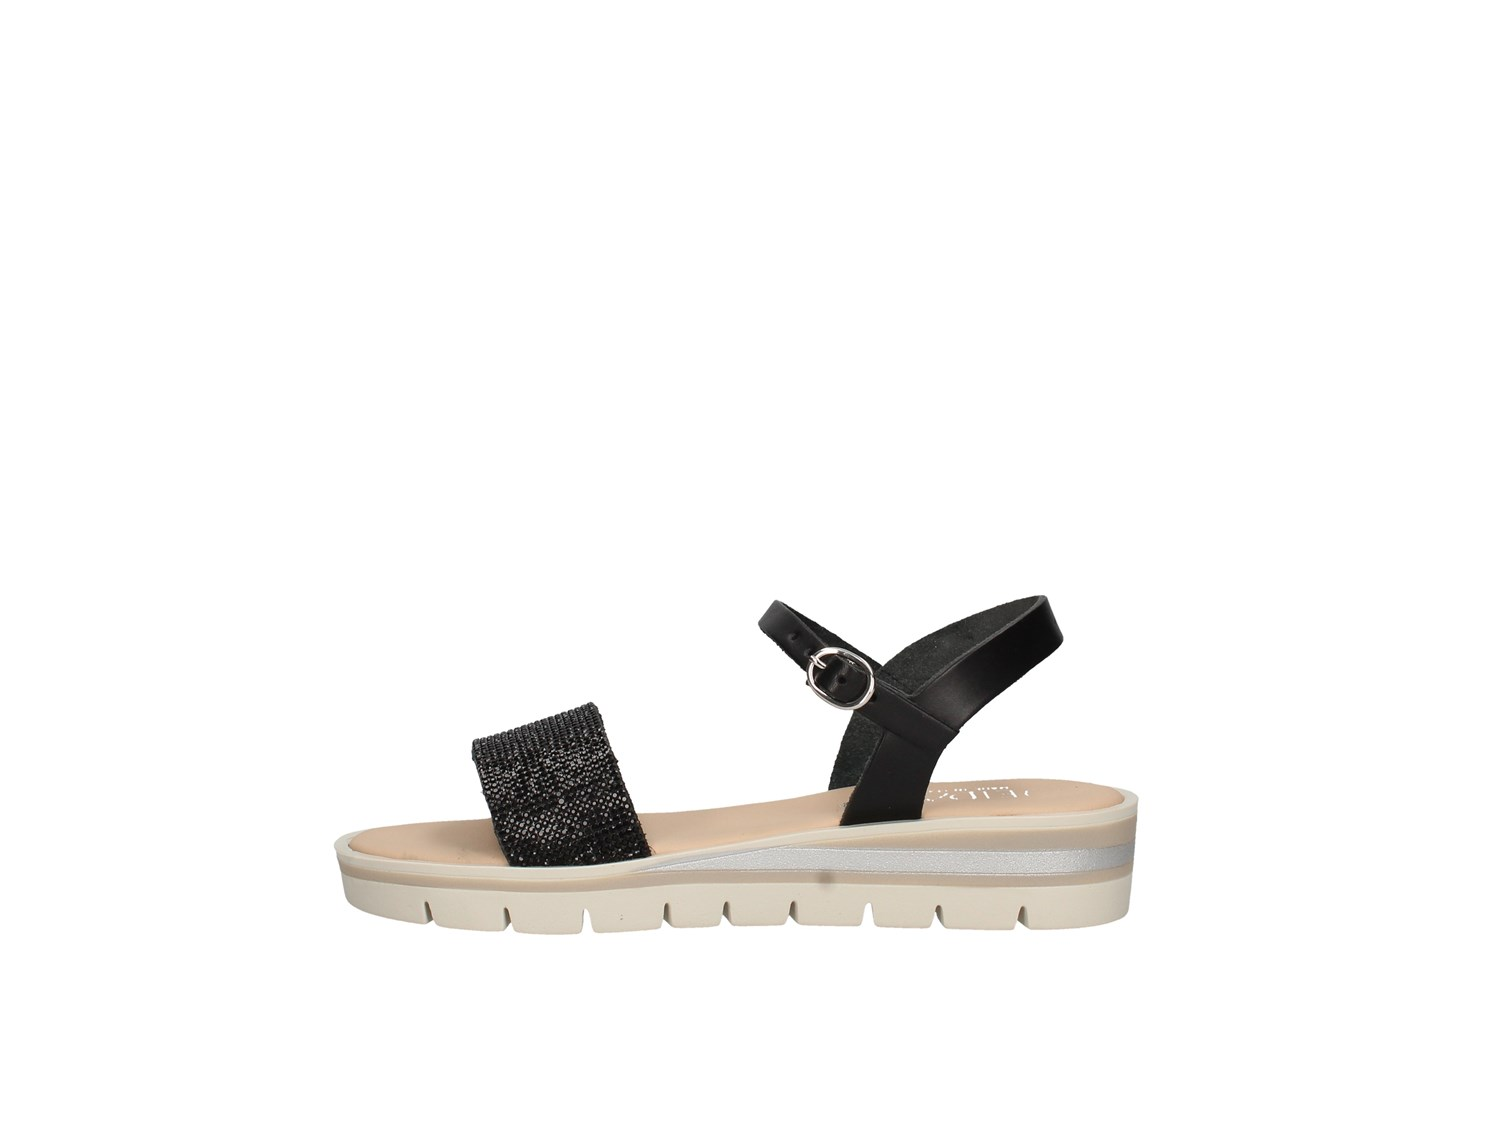 Jeiday Maratea Black Shoes Women Sandal